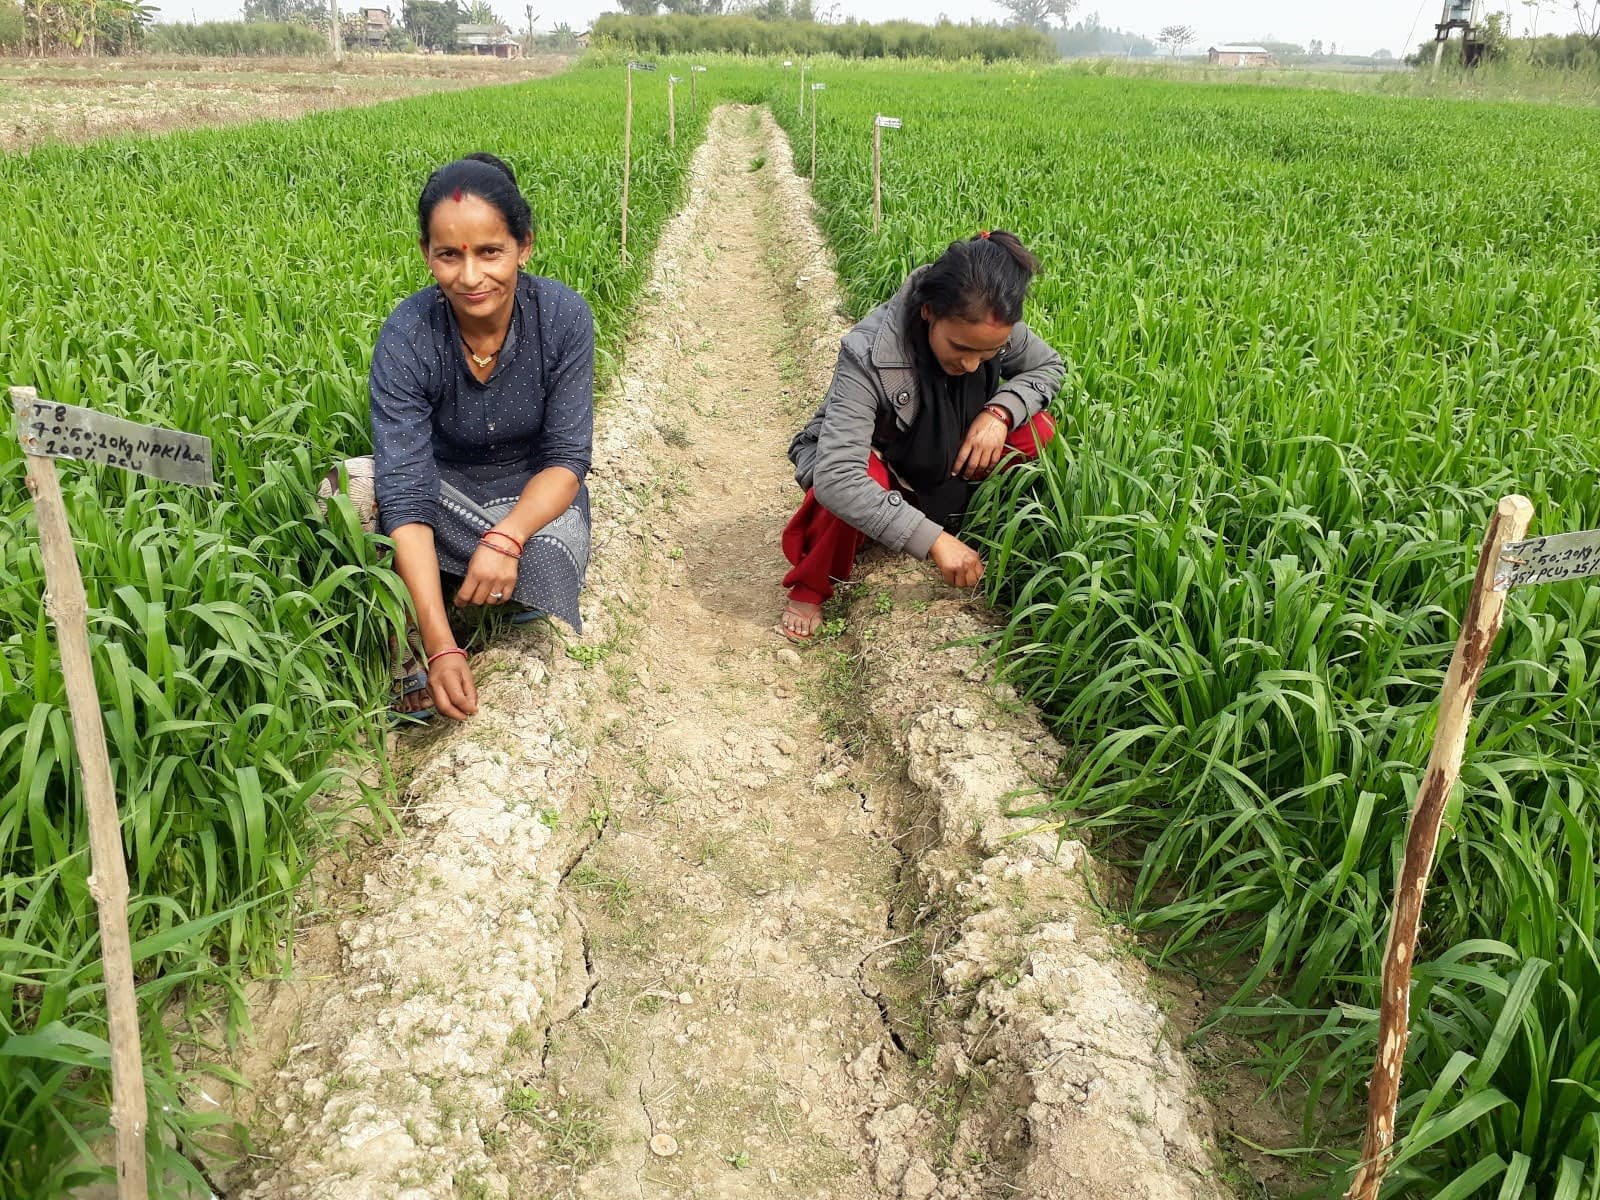 Farmers monitor wheat fields in Bardiya district, Nepal. (Photo: Surya B. Thapa/CIMMYT)